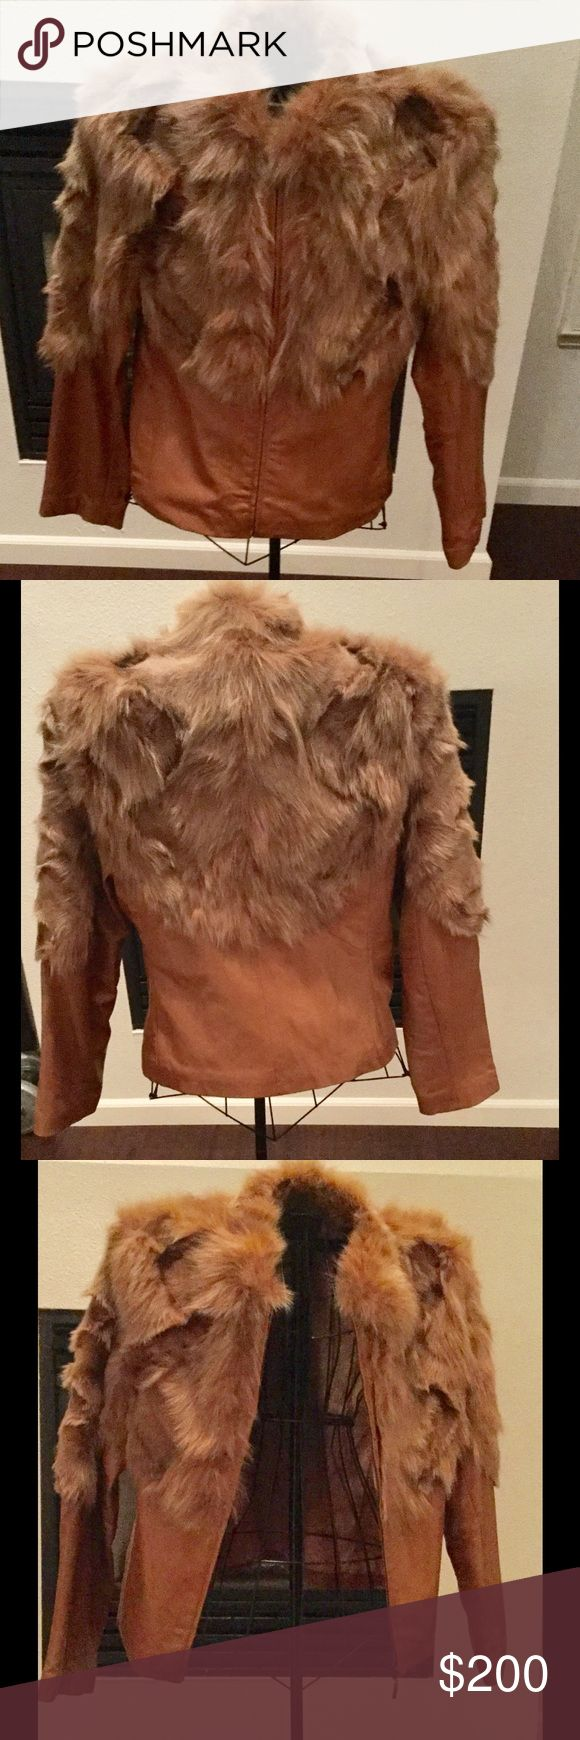 Andrew Marc Leather Jacket with Fur Andrew Marc Leather Jacket with Fur Mark Andre Jackets & Coats